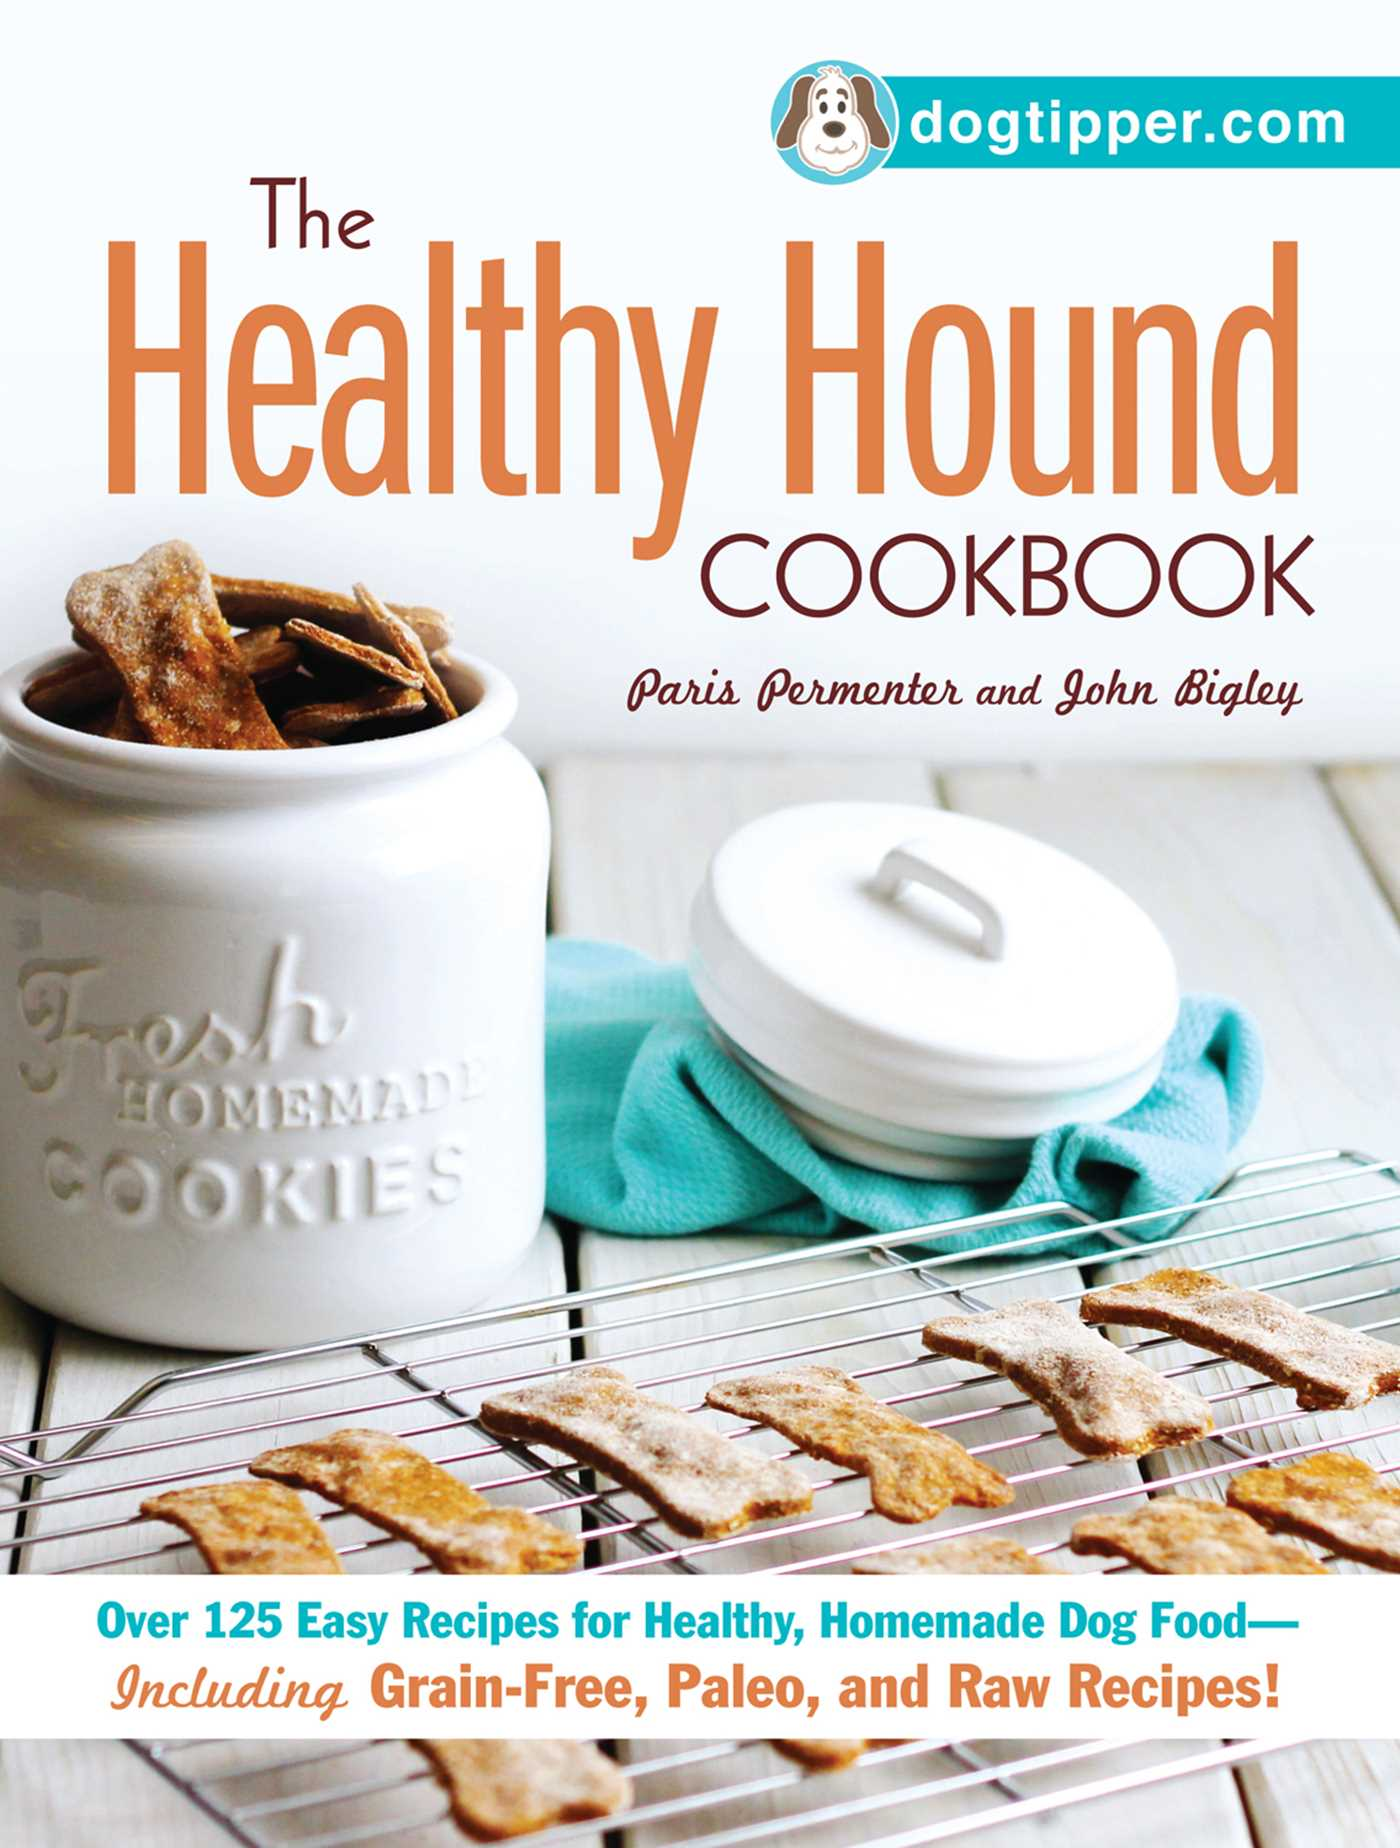 The healthy hound cookbook book by paris permenter john bigley the healthy hound cookbook 9781440572821 hr forumfinder Image collections